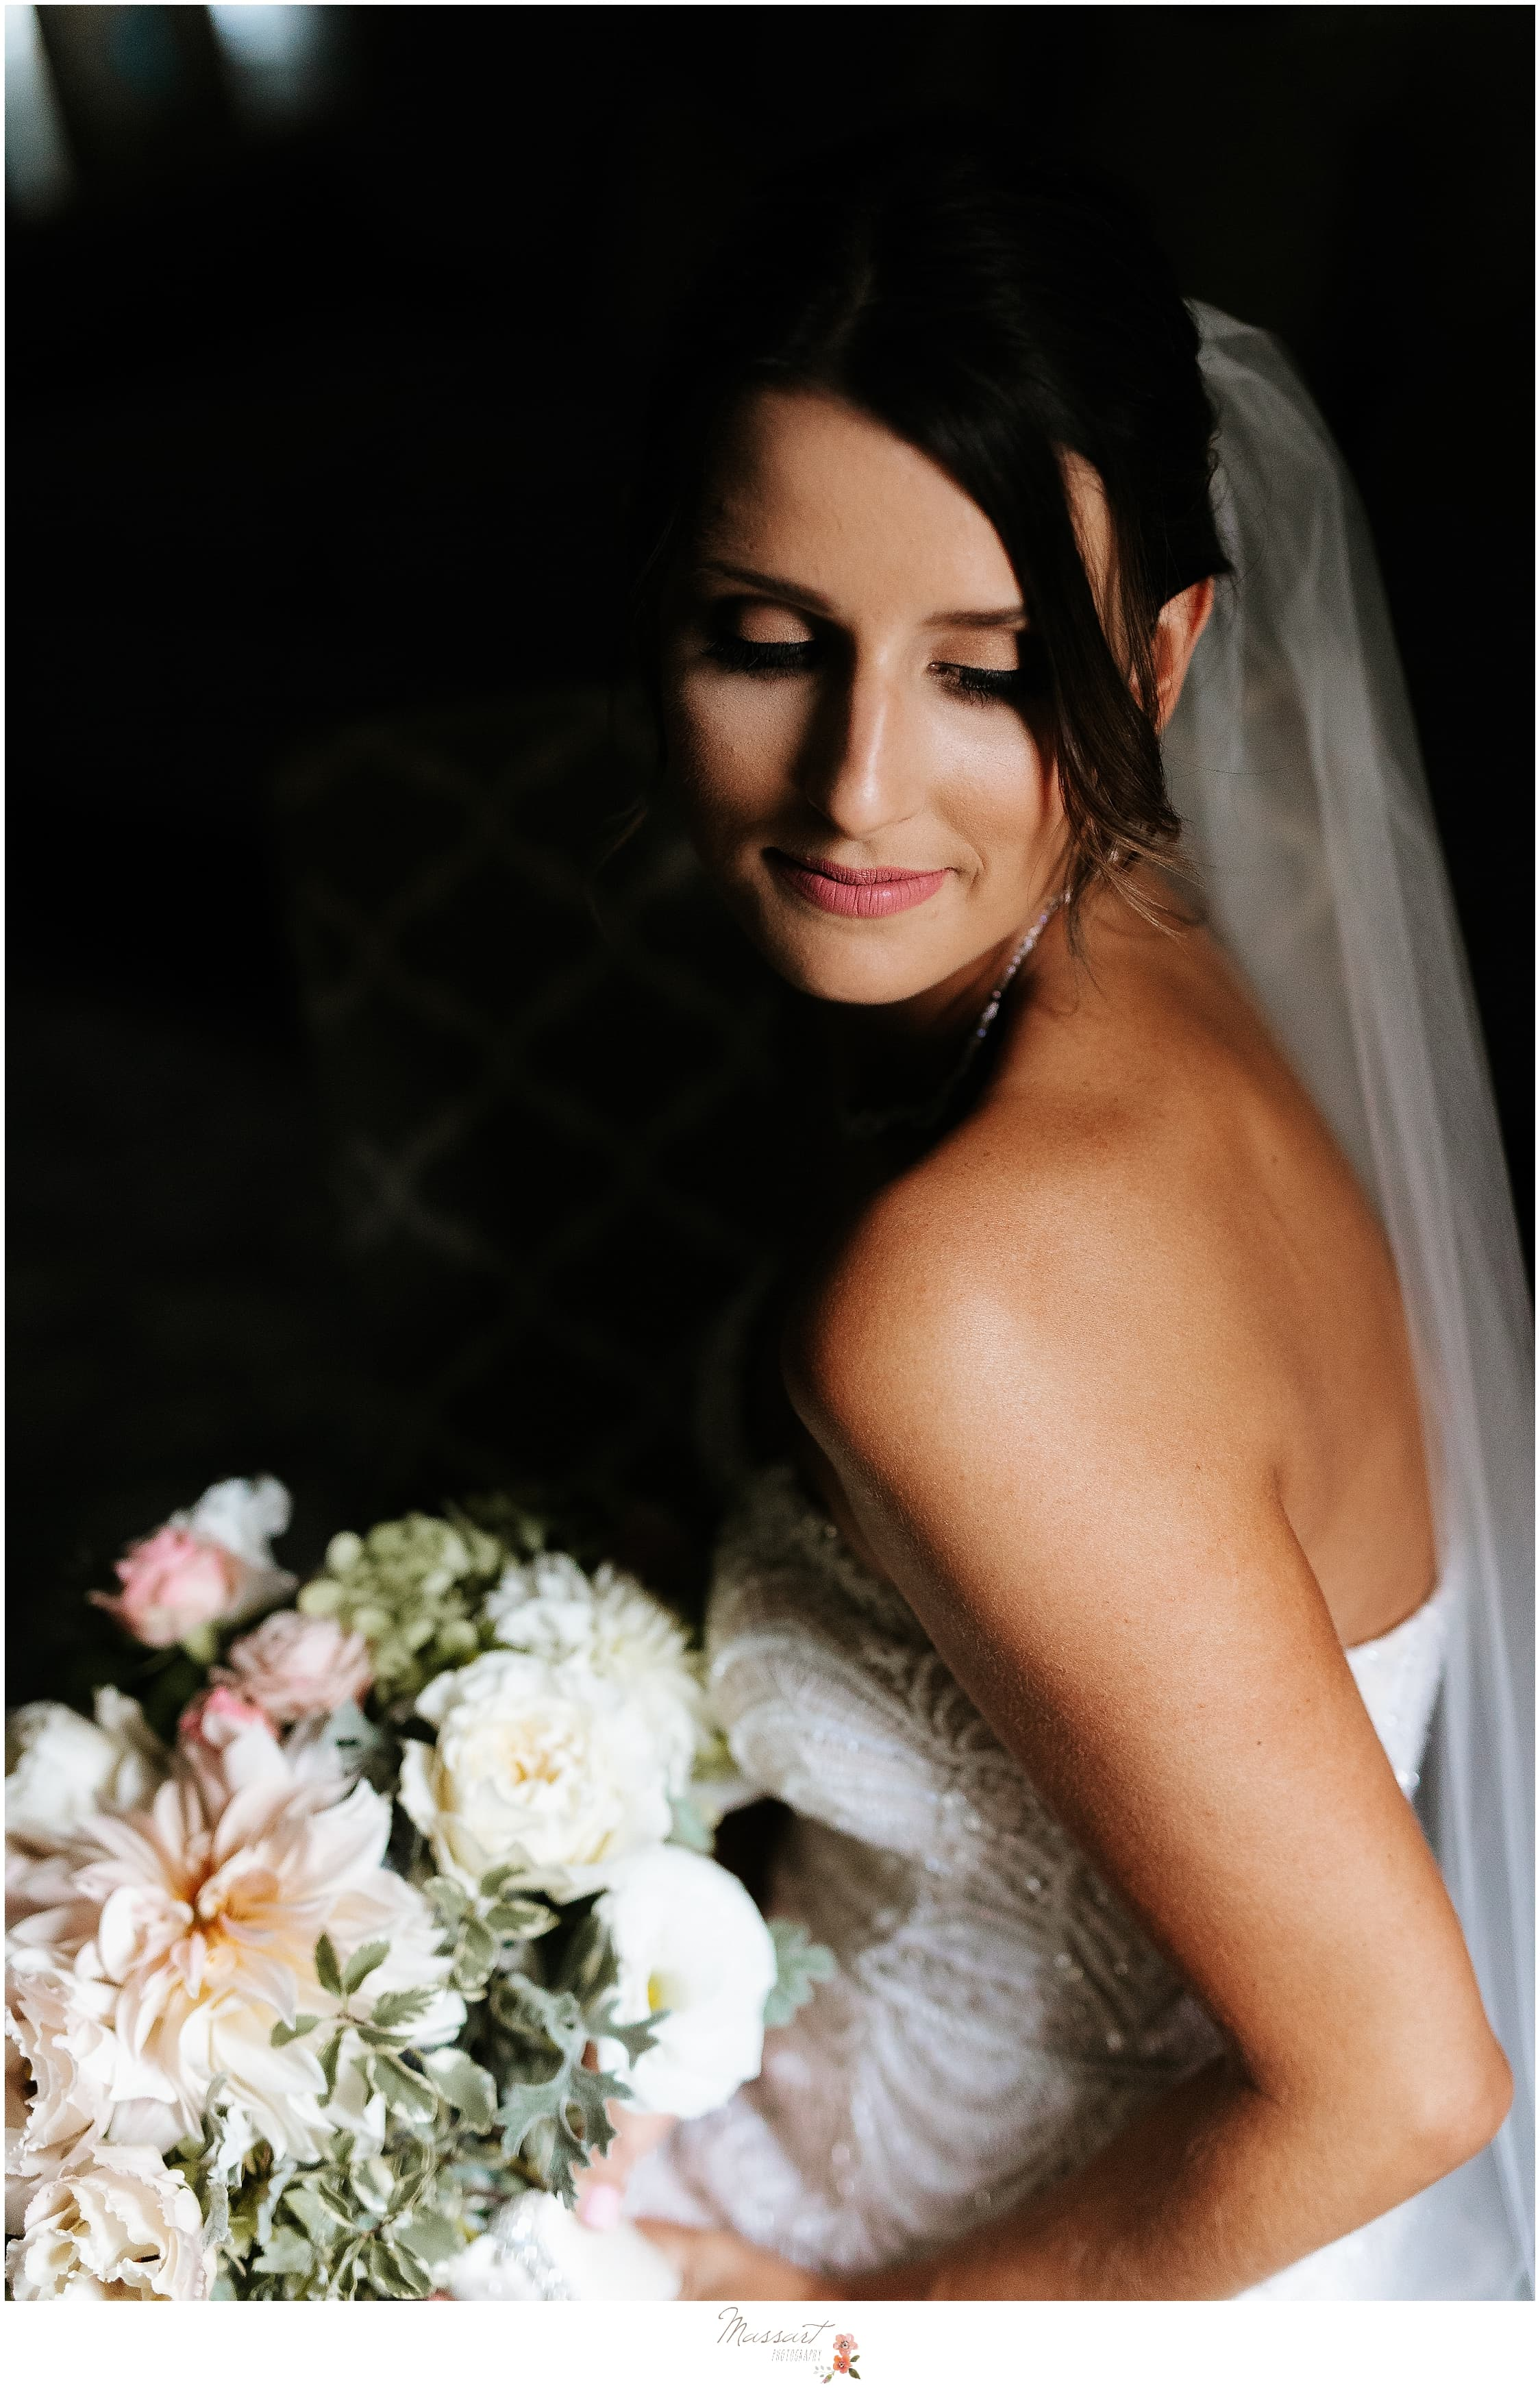 Rhode Island wedding photographers Massart Photography photograph gorgeous bride